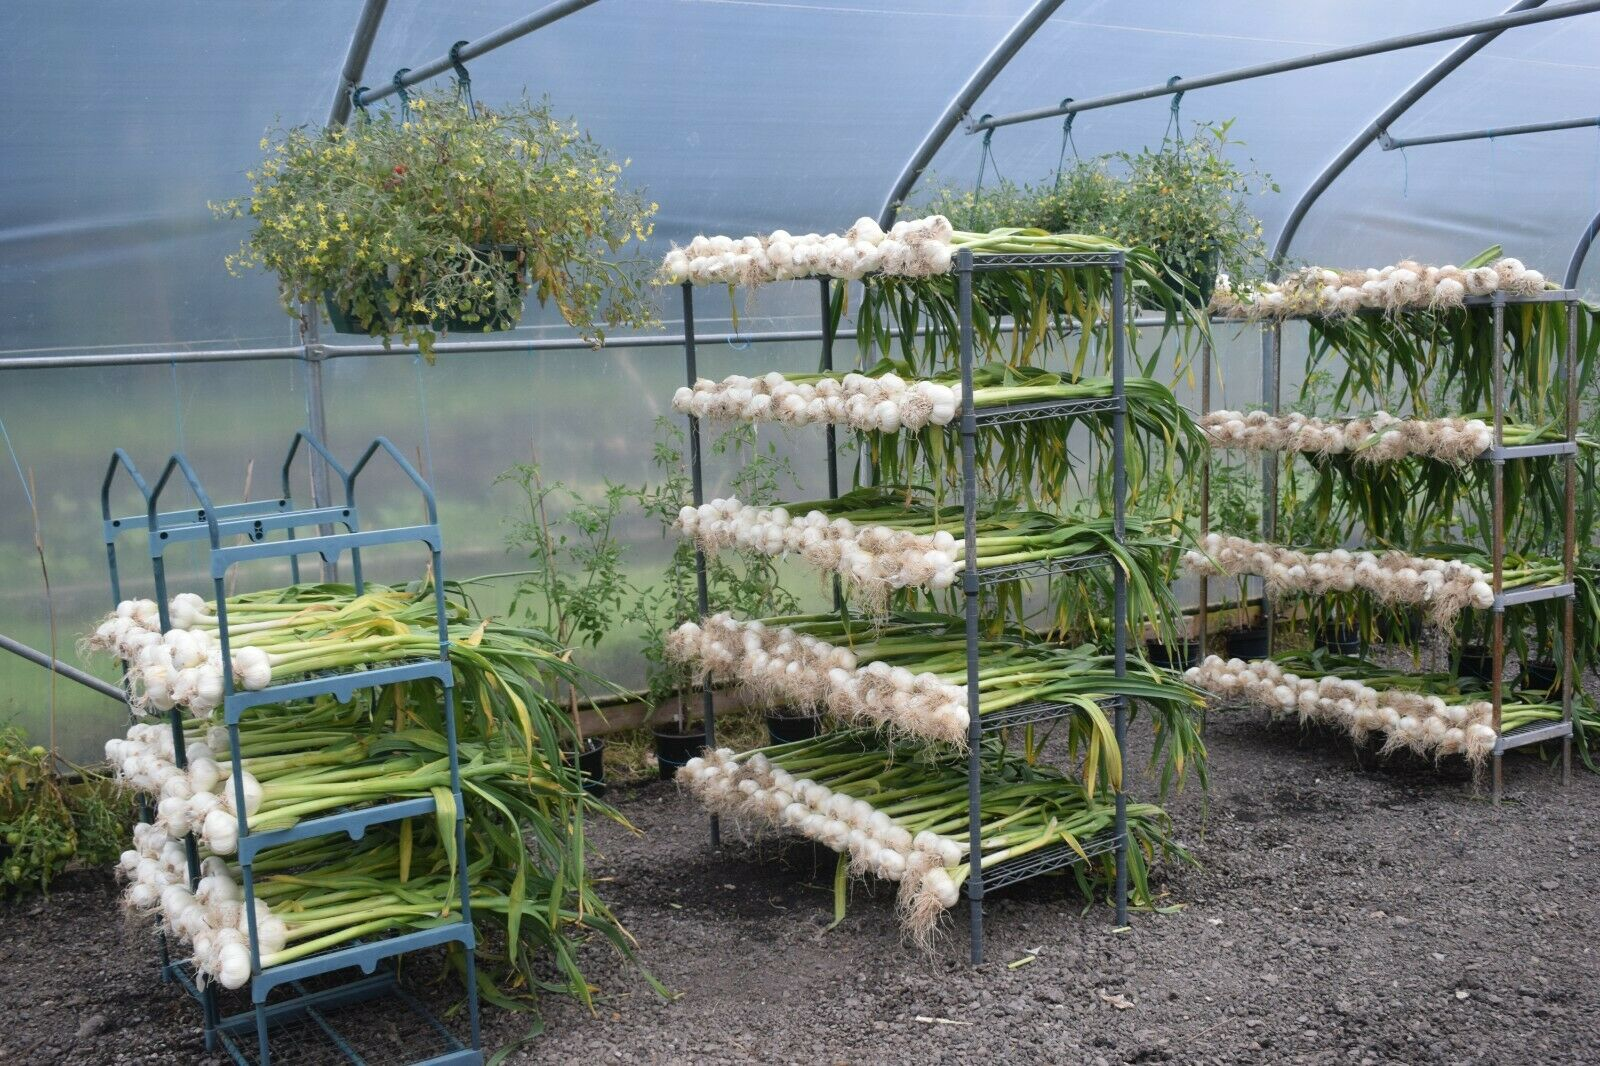 12 GIANT ELEPHANT GARLIC CORMS GROWN IN WALES ORGANIC FRESH PICKED BY HAND